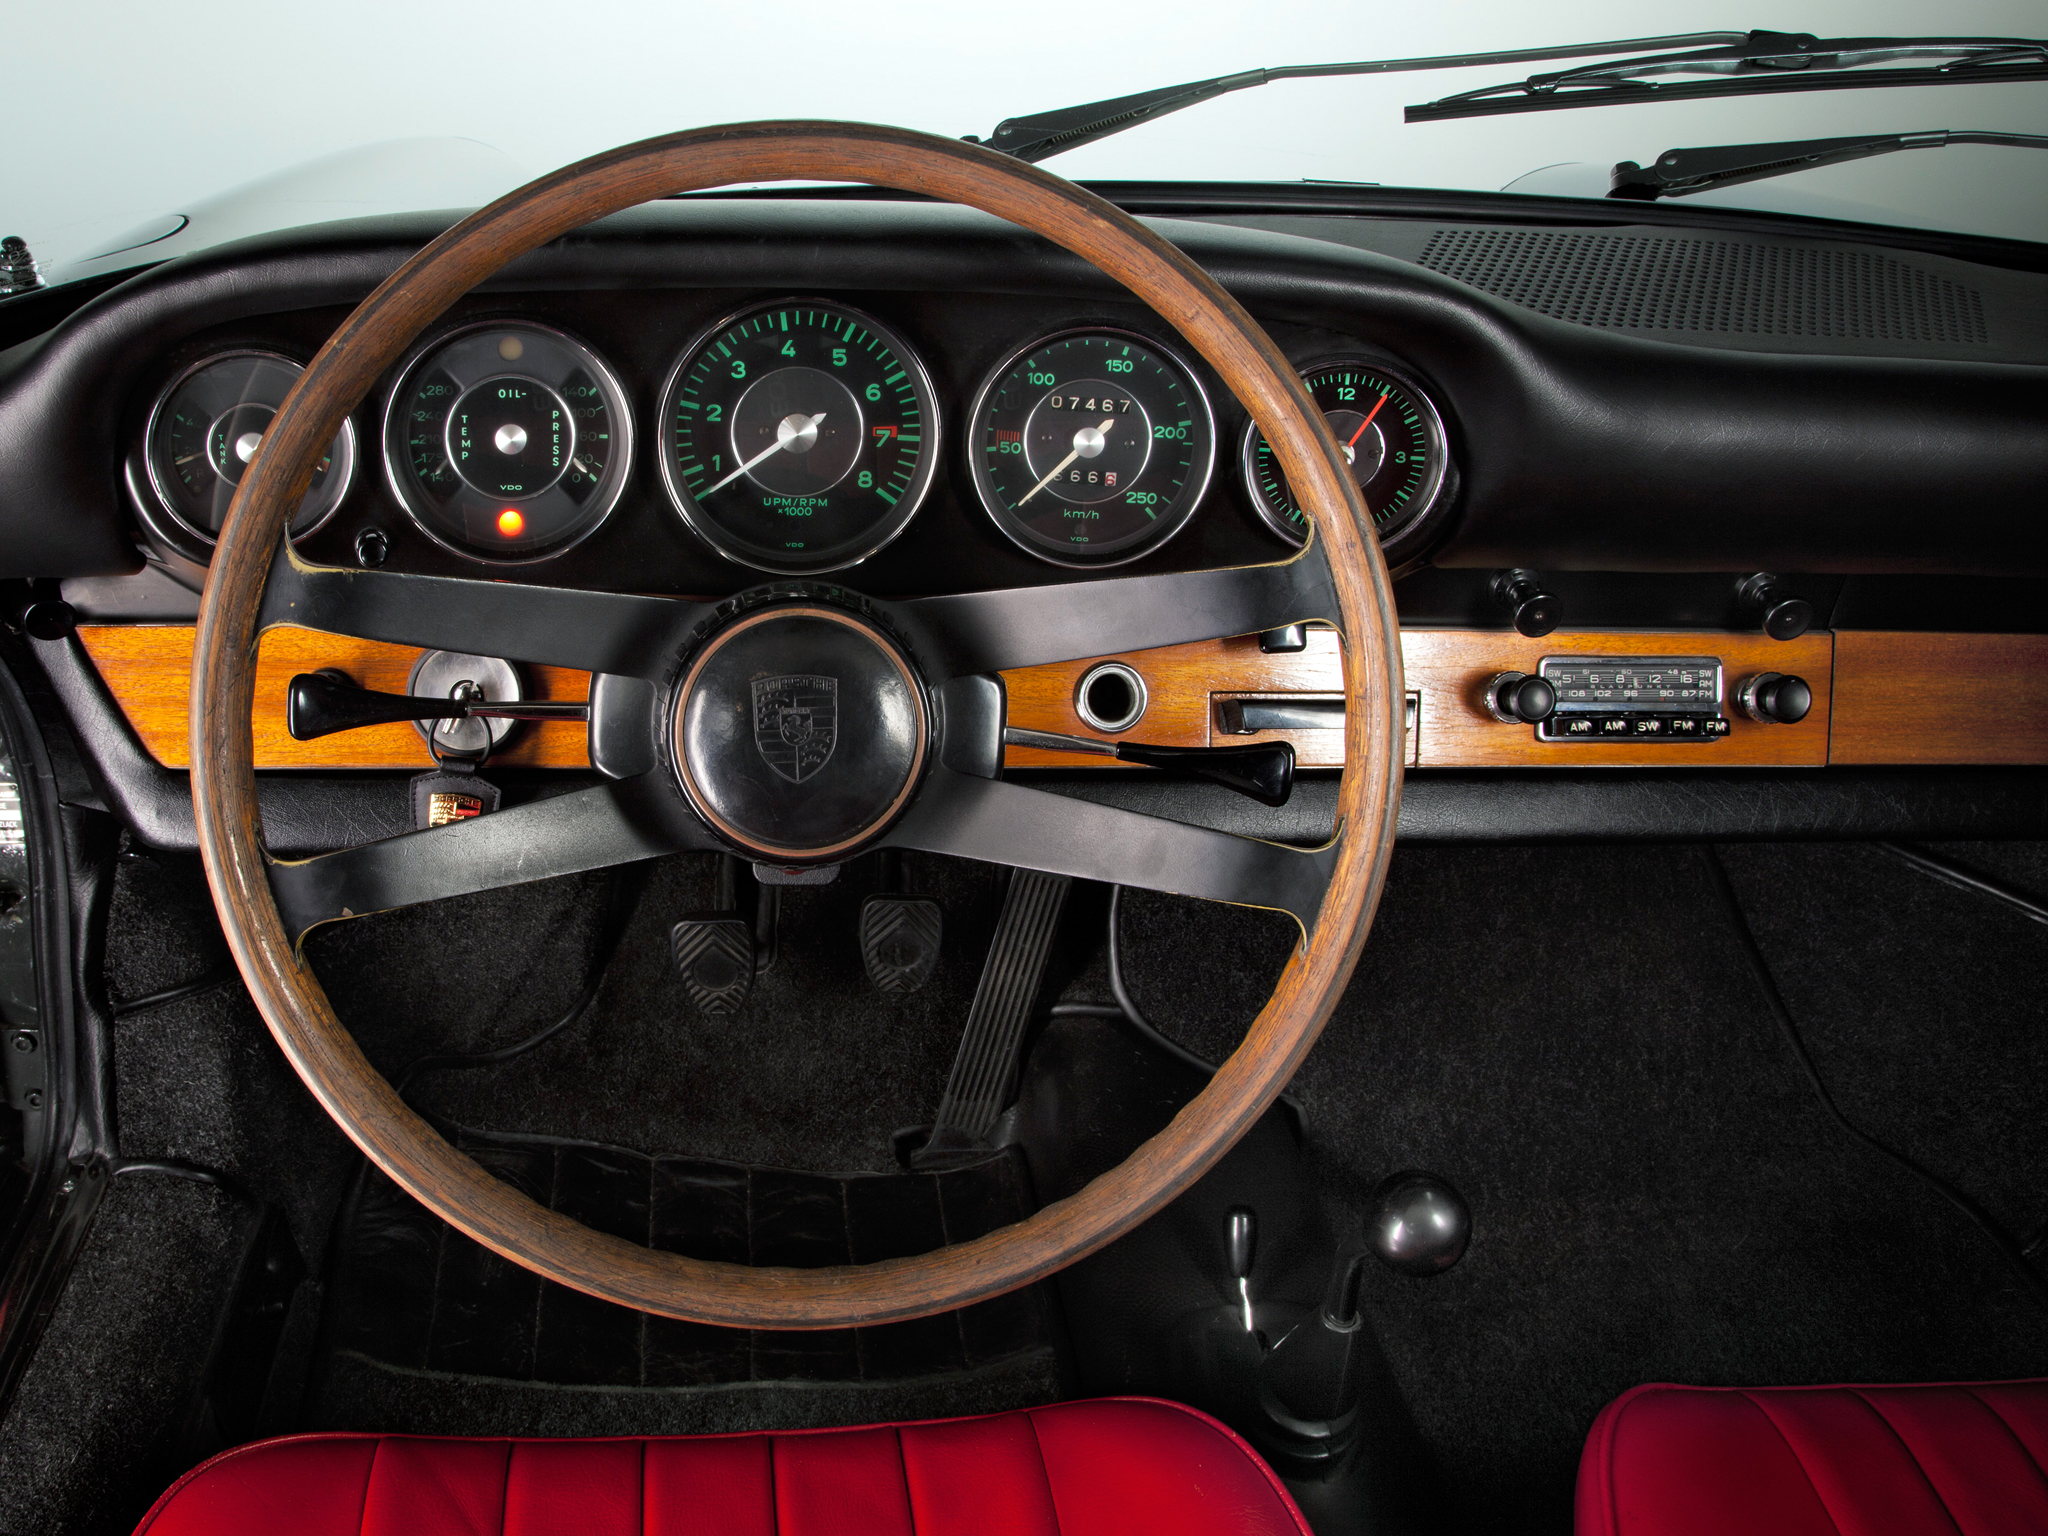 1964 porsche 911 2 0 coupe 901 classic interior g wallpaper 2048x1536 202184 wallpaperup. Black Bedroom Furniture Sets. Home Design Ideas